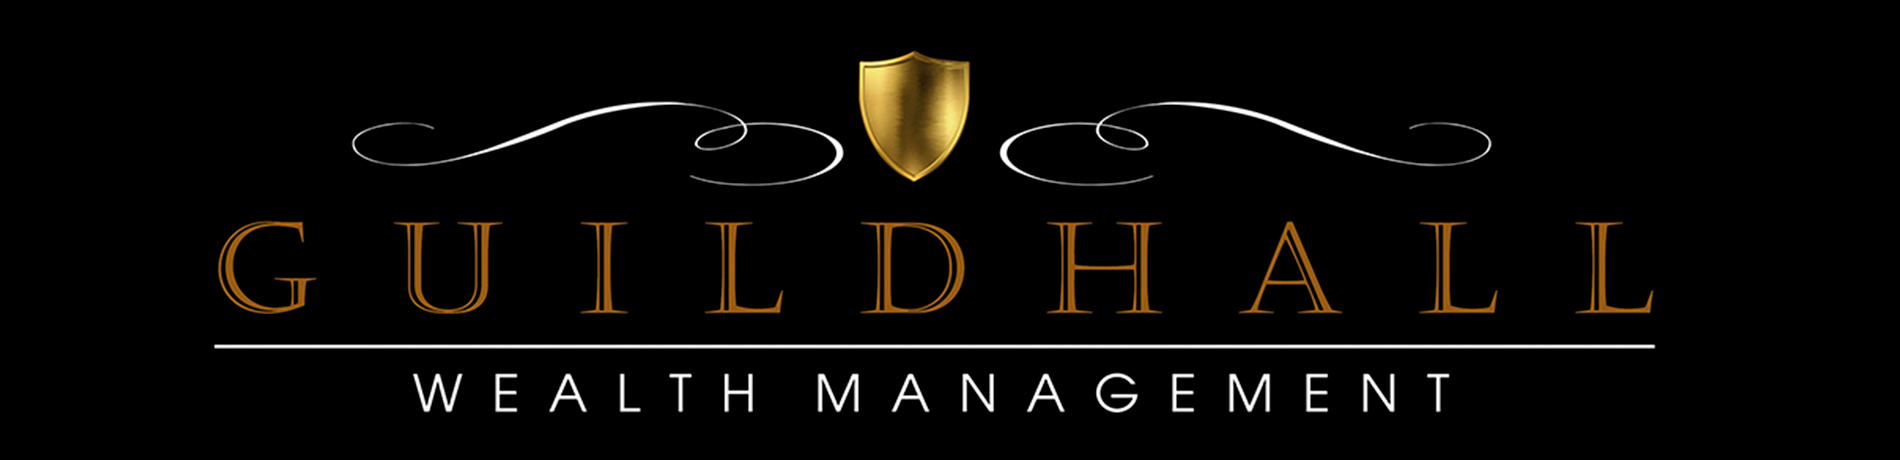 Guildhall Wealth Management brand name and identity